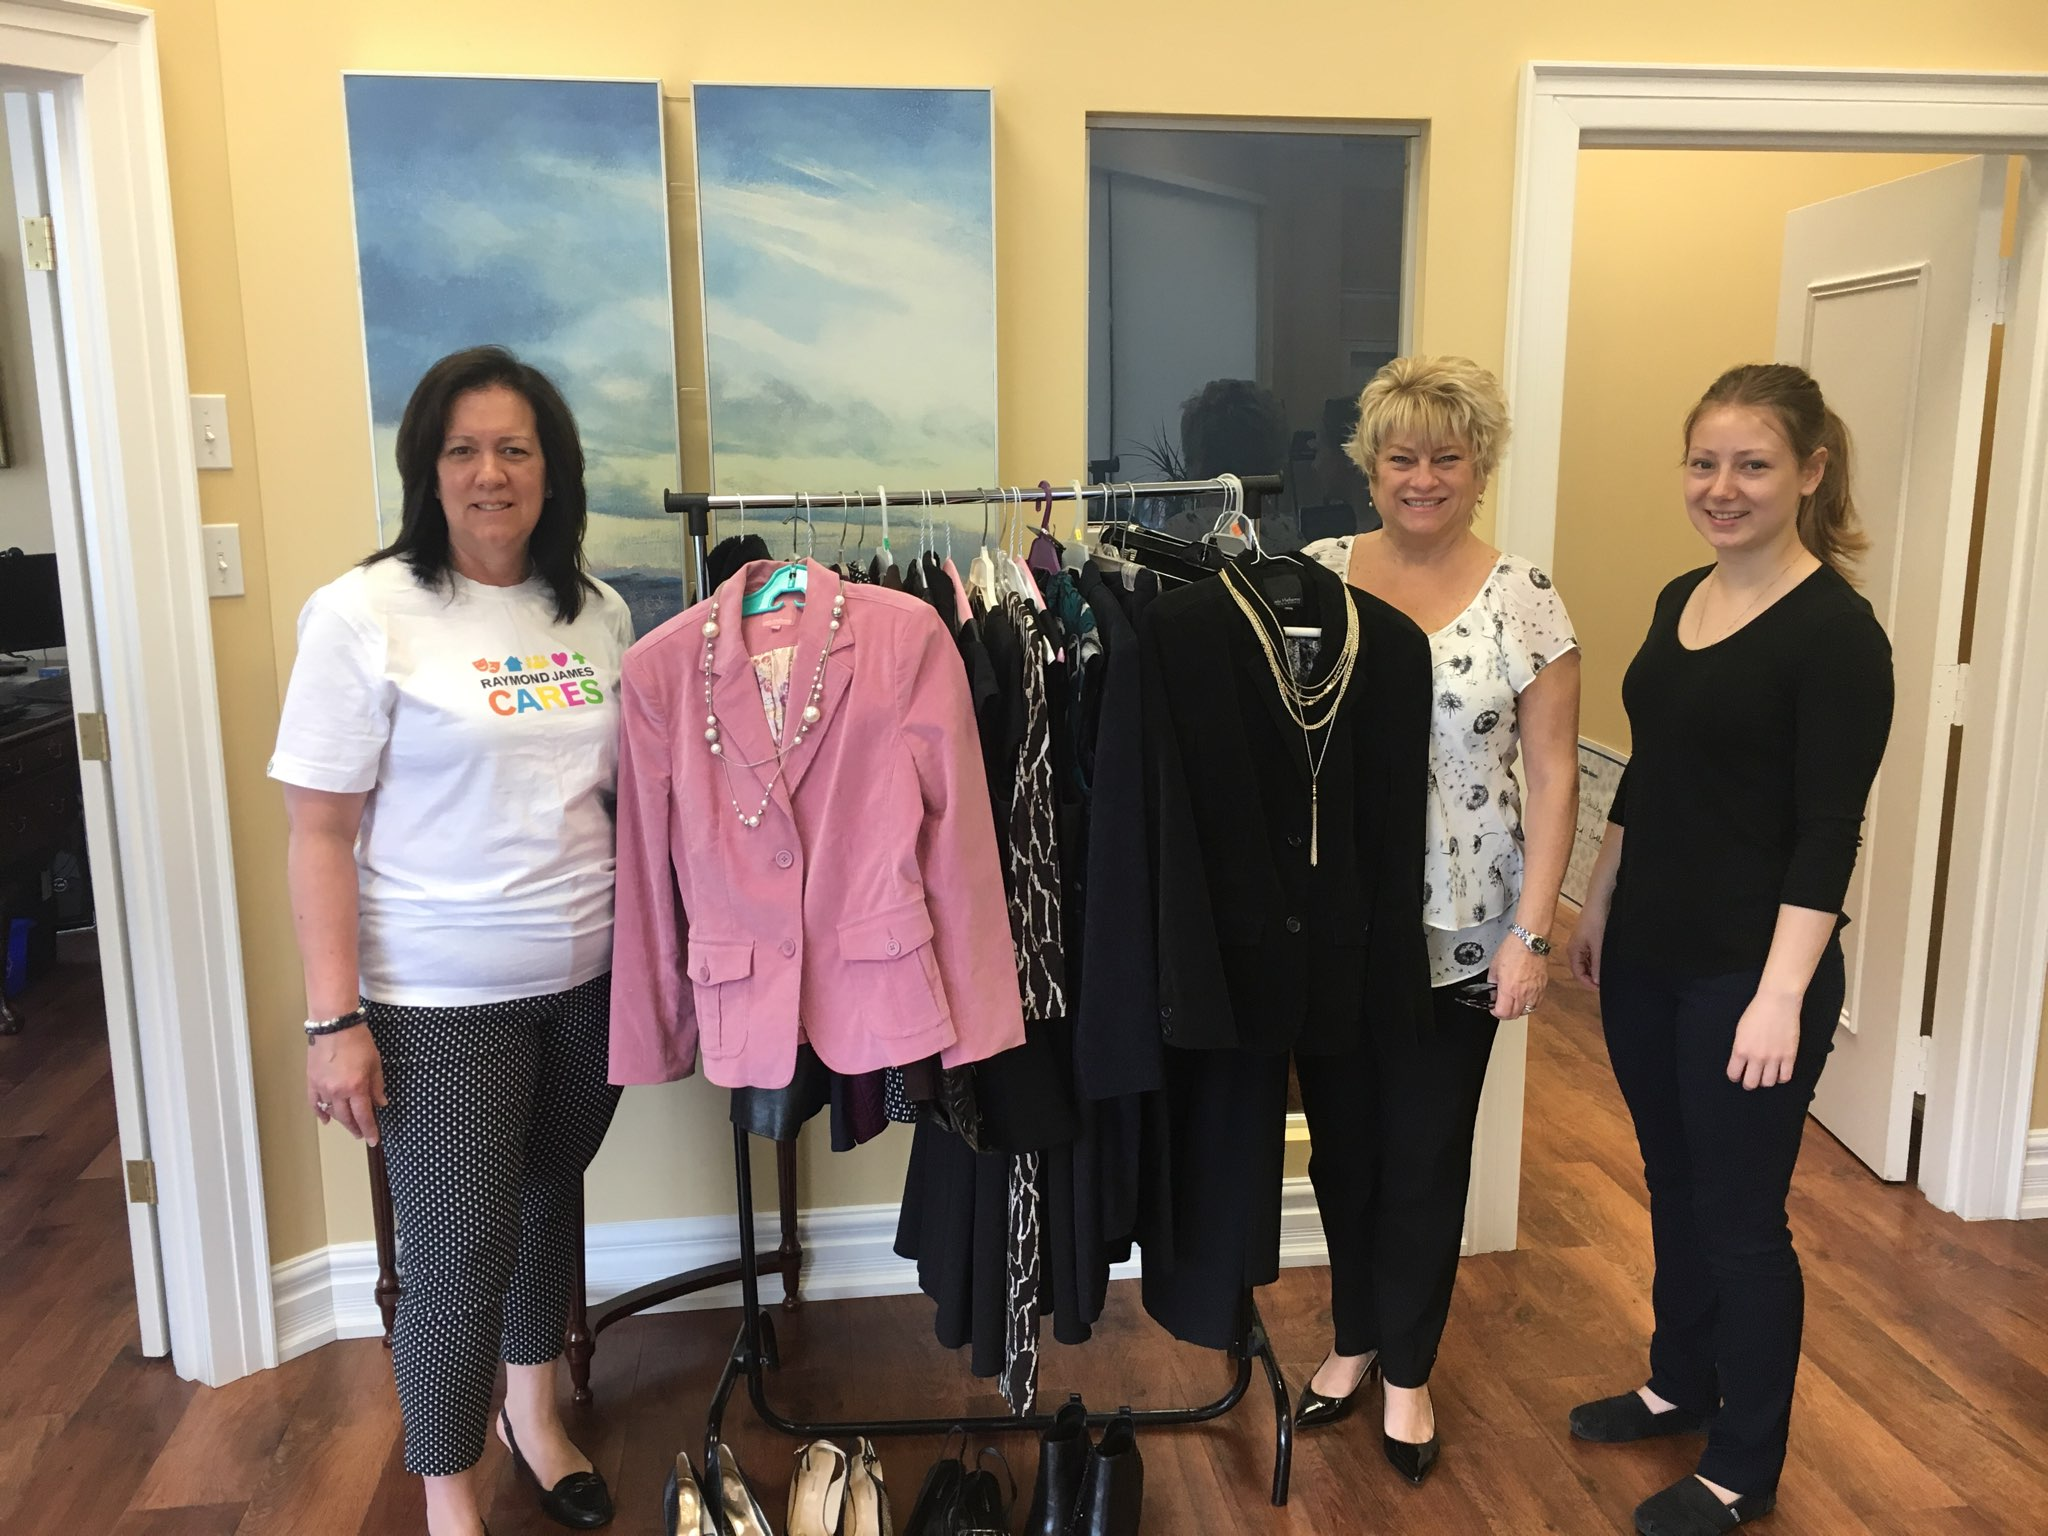 2019 RJ Cares Barrie, ON - Dress for Success Clothing Drive Laura Hemsworth, Joanne Parkinson, Ella Hedley